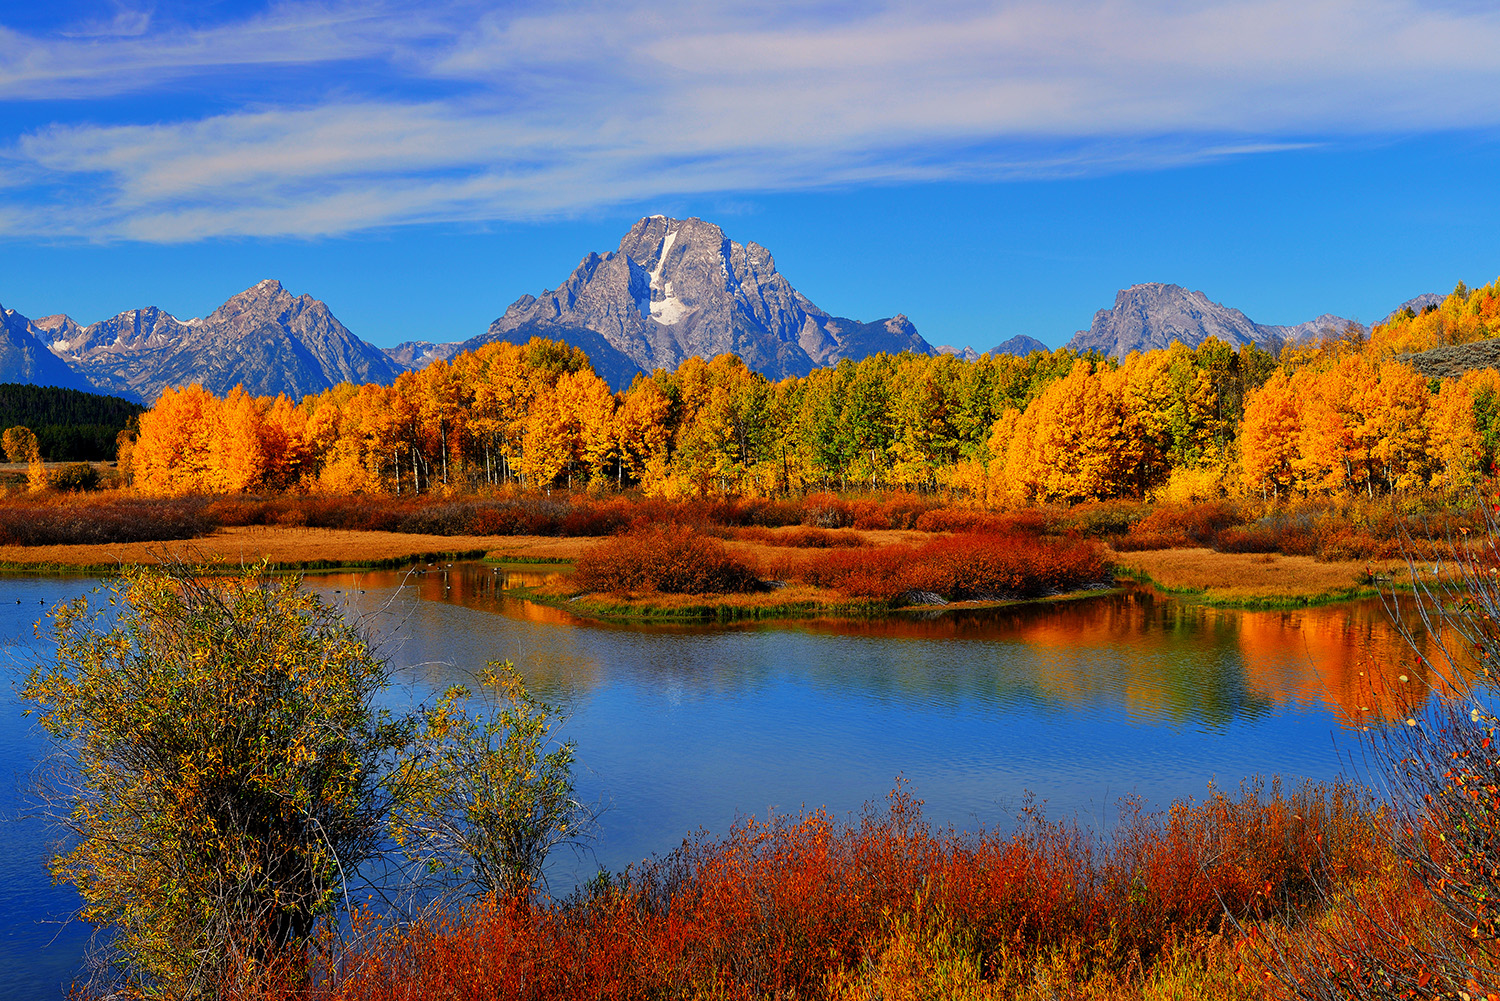 Autumn at the Oxbow